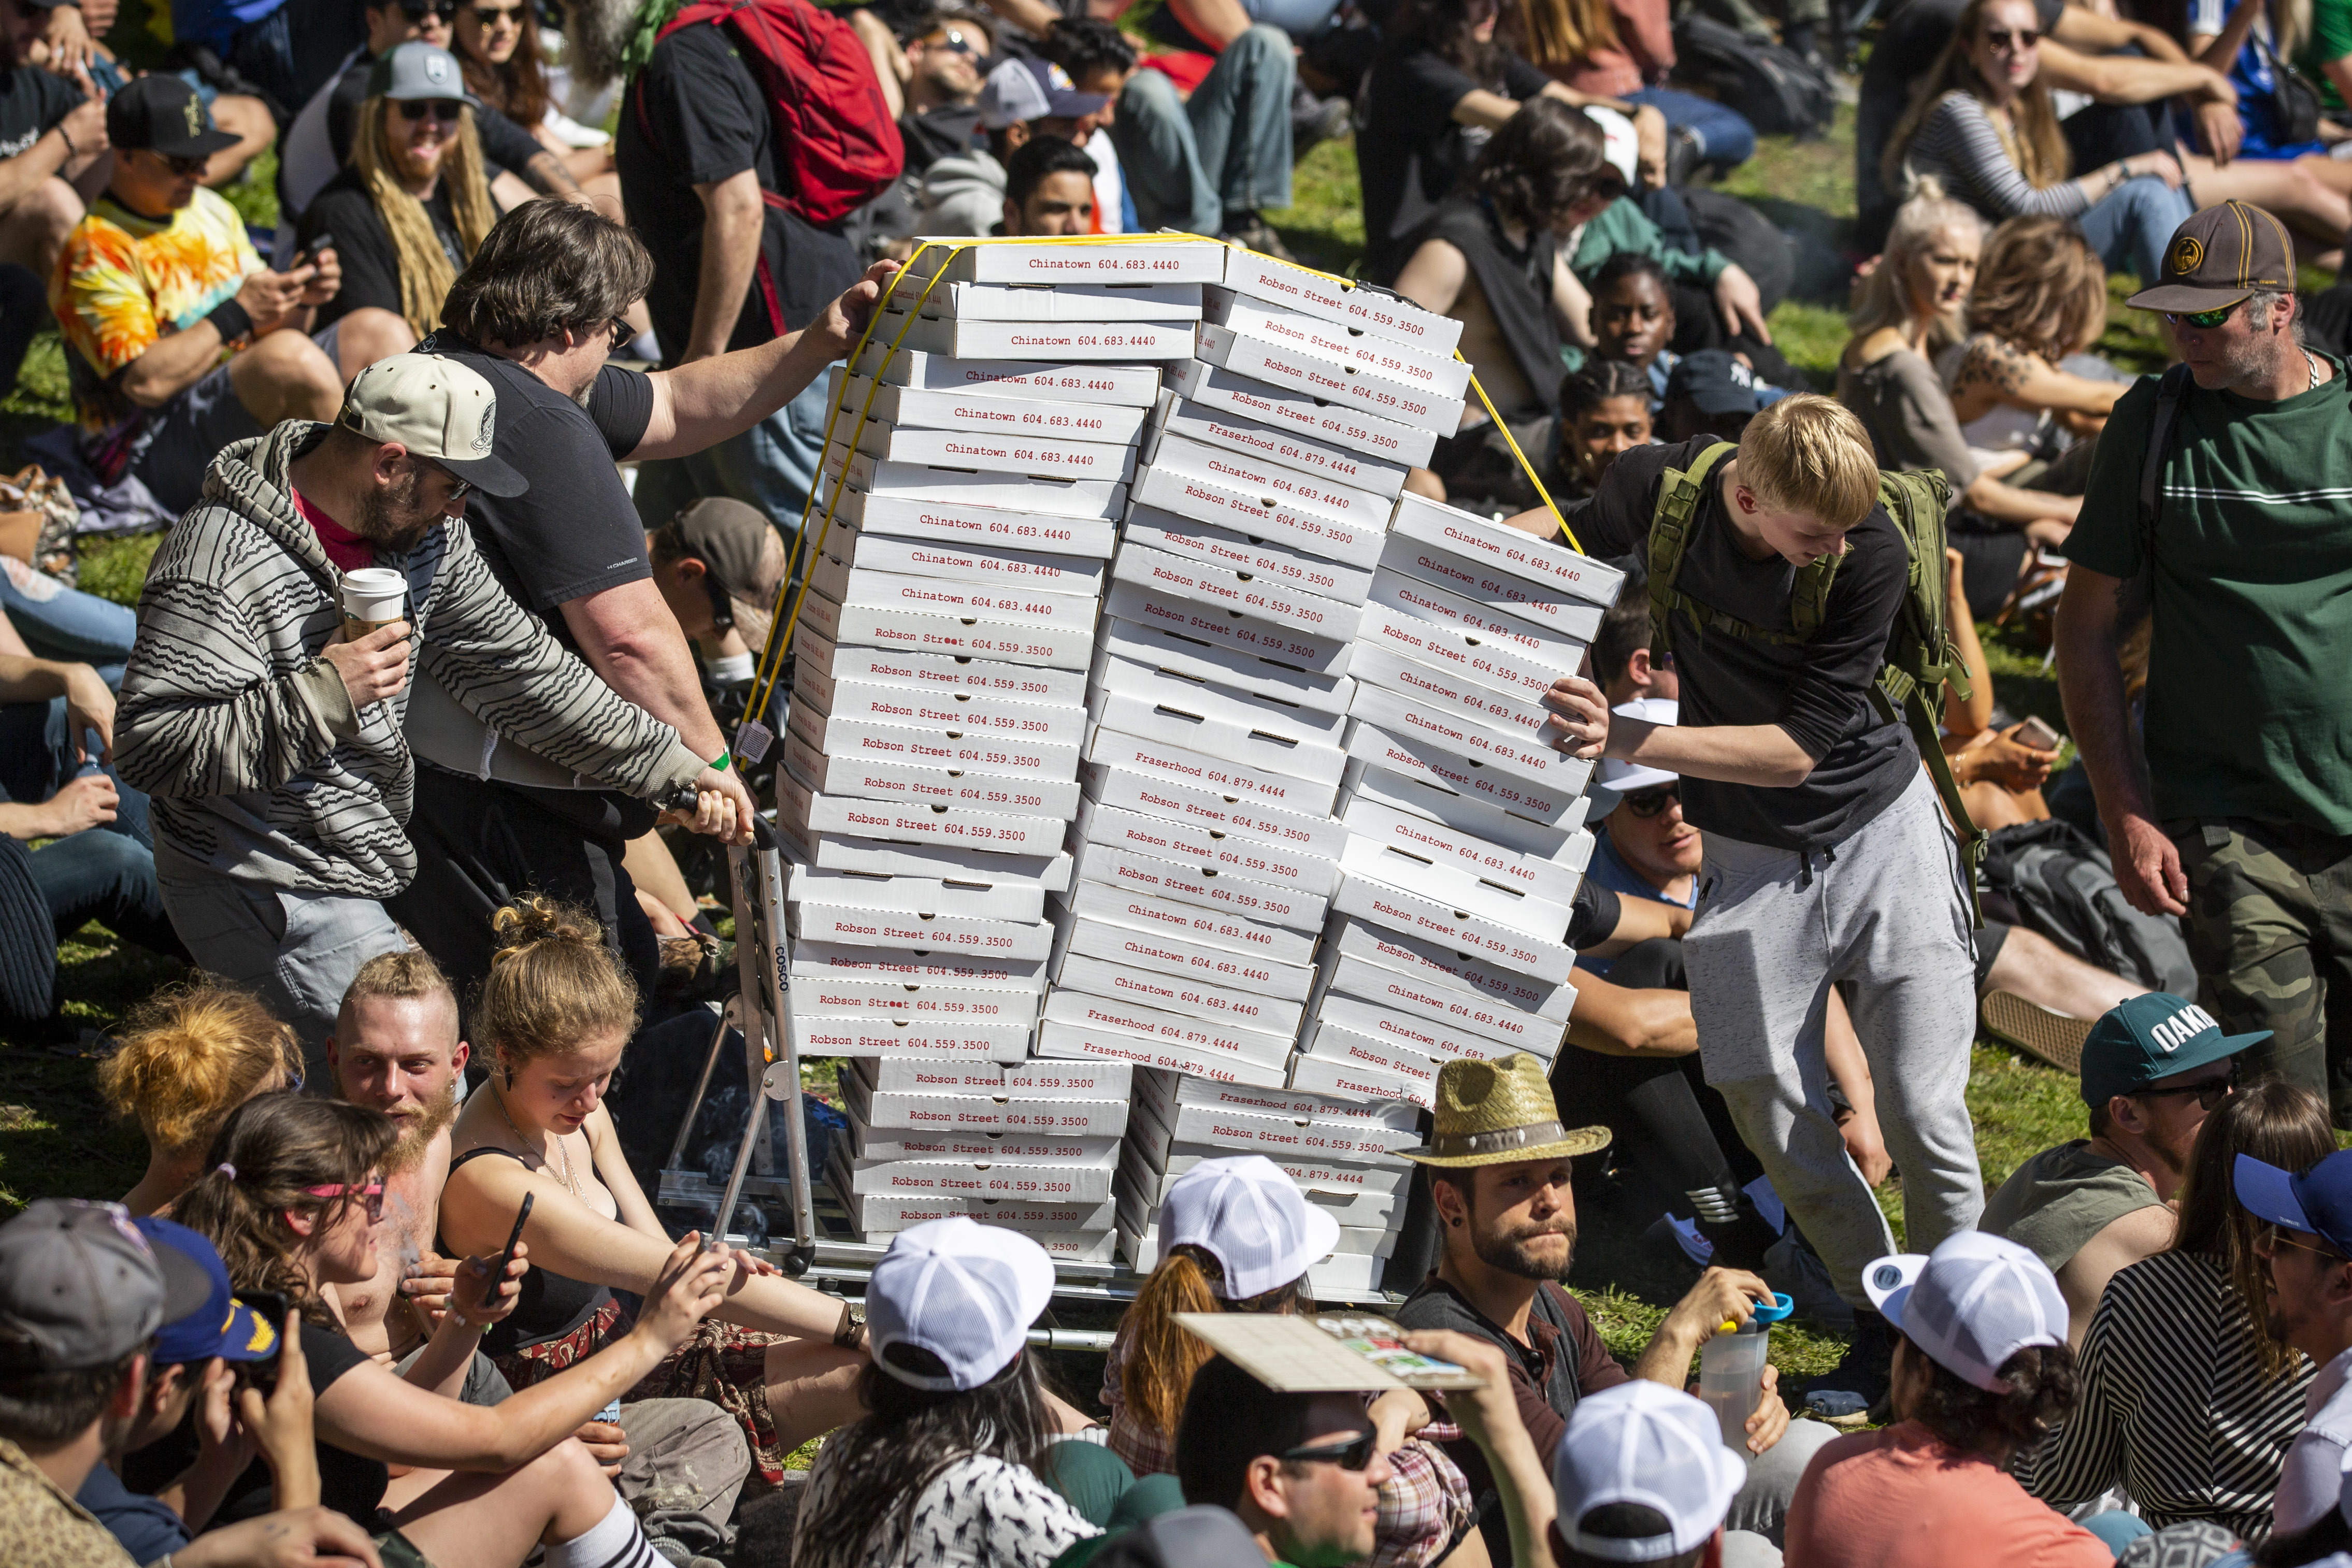 People push a cart of pizza during the annual 420 protest at Sunset Beach in Vancouver on Saturday, April 20, 2019. The 420 celebration — which organizers describe as a protest — features numerous cannabis vendors and a free concert by the hip hop group Cypress Hill. (Ben Nelms/CBC)